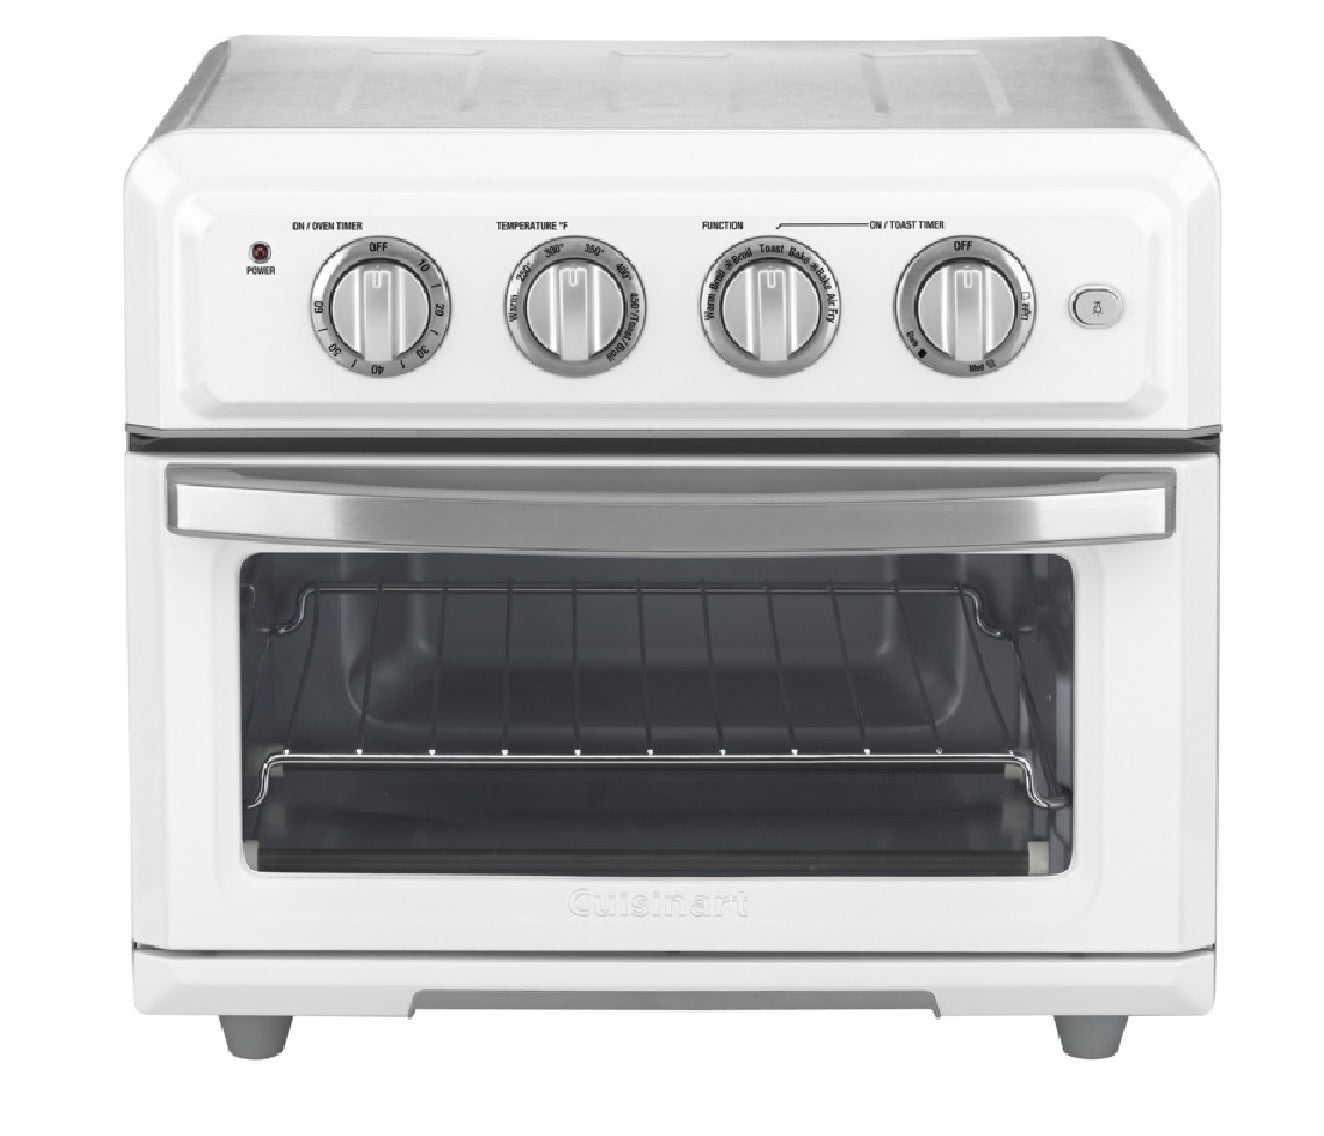 Cuisinart Toa-60 Air Fryer Toaster Oven, Stainless Steel, Gray/silver